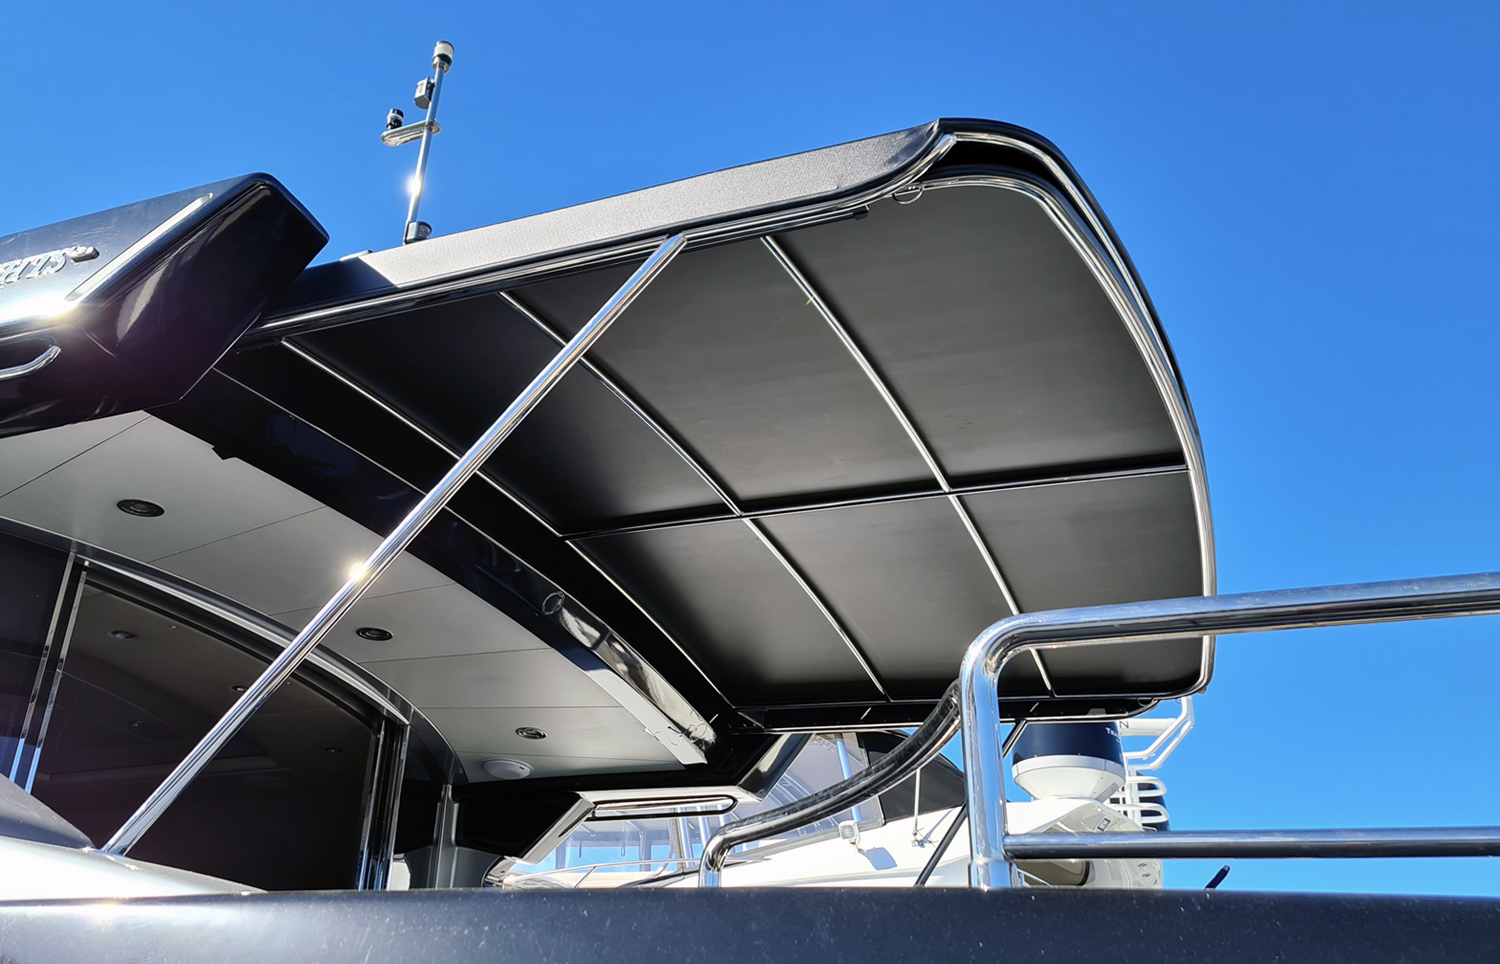 Custom slide out Warren Yacht awning